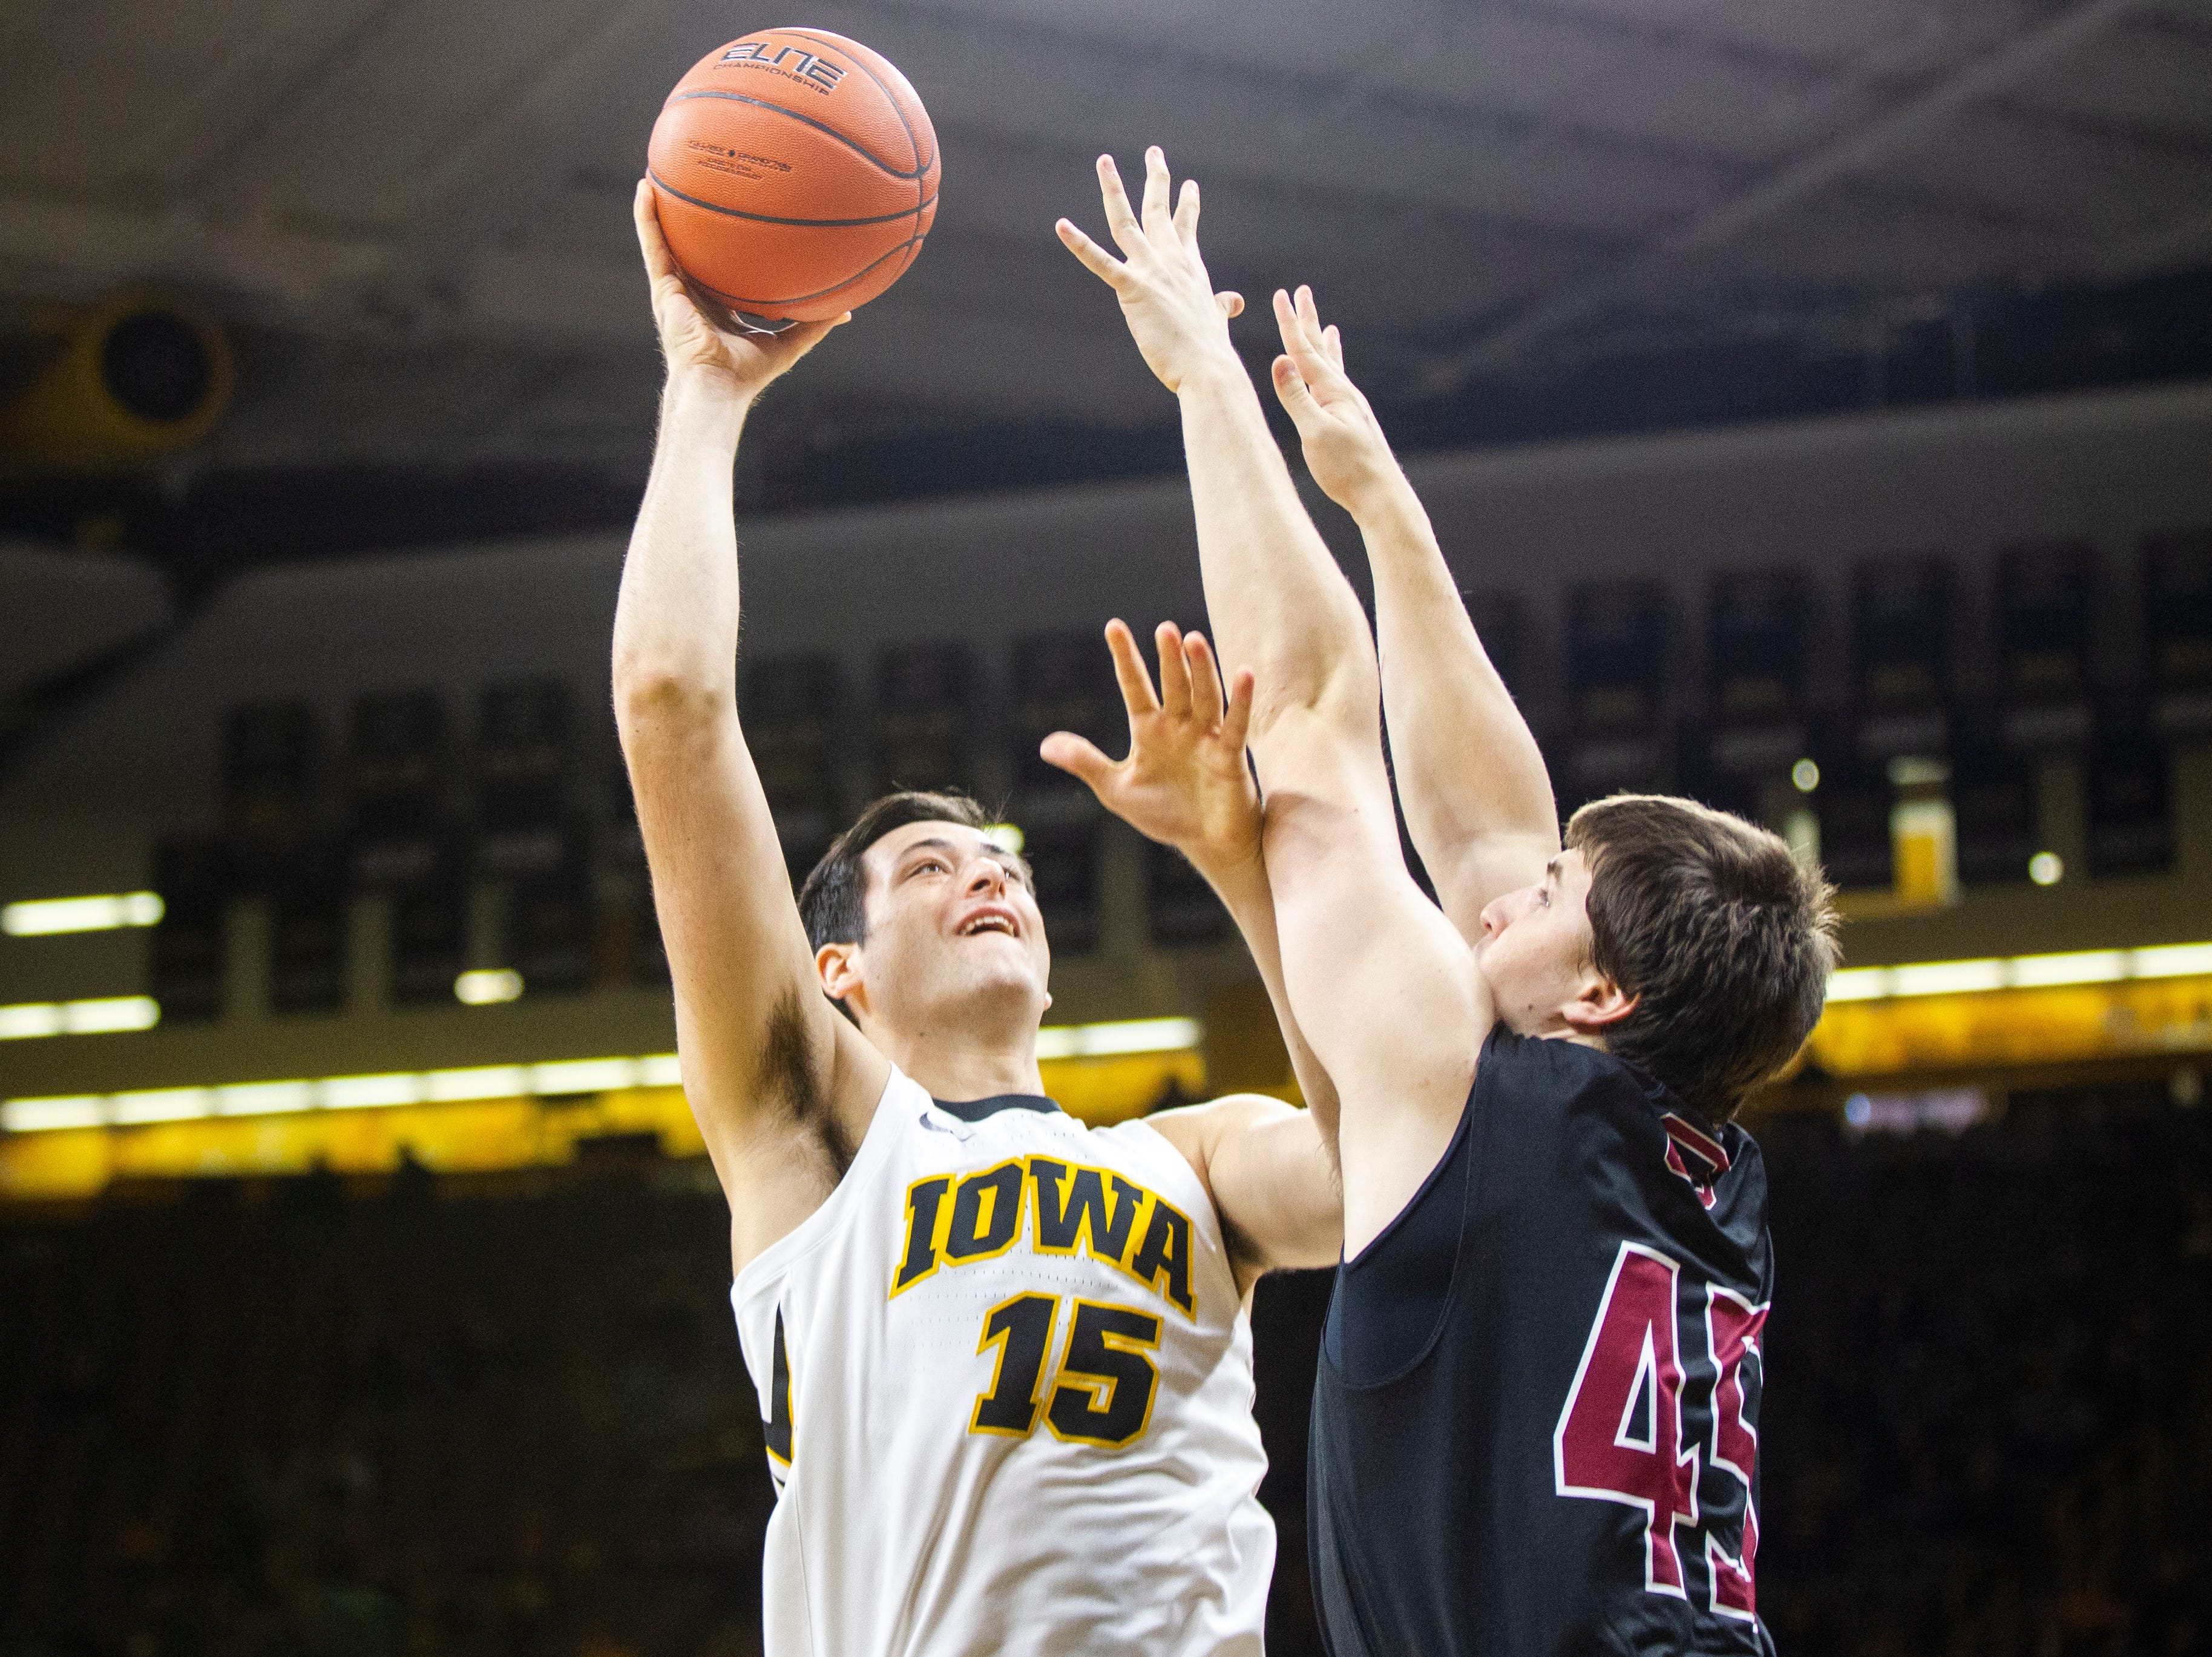 Iowa forward Ryan Kriener (15) shoots over Guilford's Steven Ruszala (45) during a men's basketball exhibition game on Sunday, Nov. 4, 2018, at Carver-Hawkeye Arena in Iowa City.